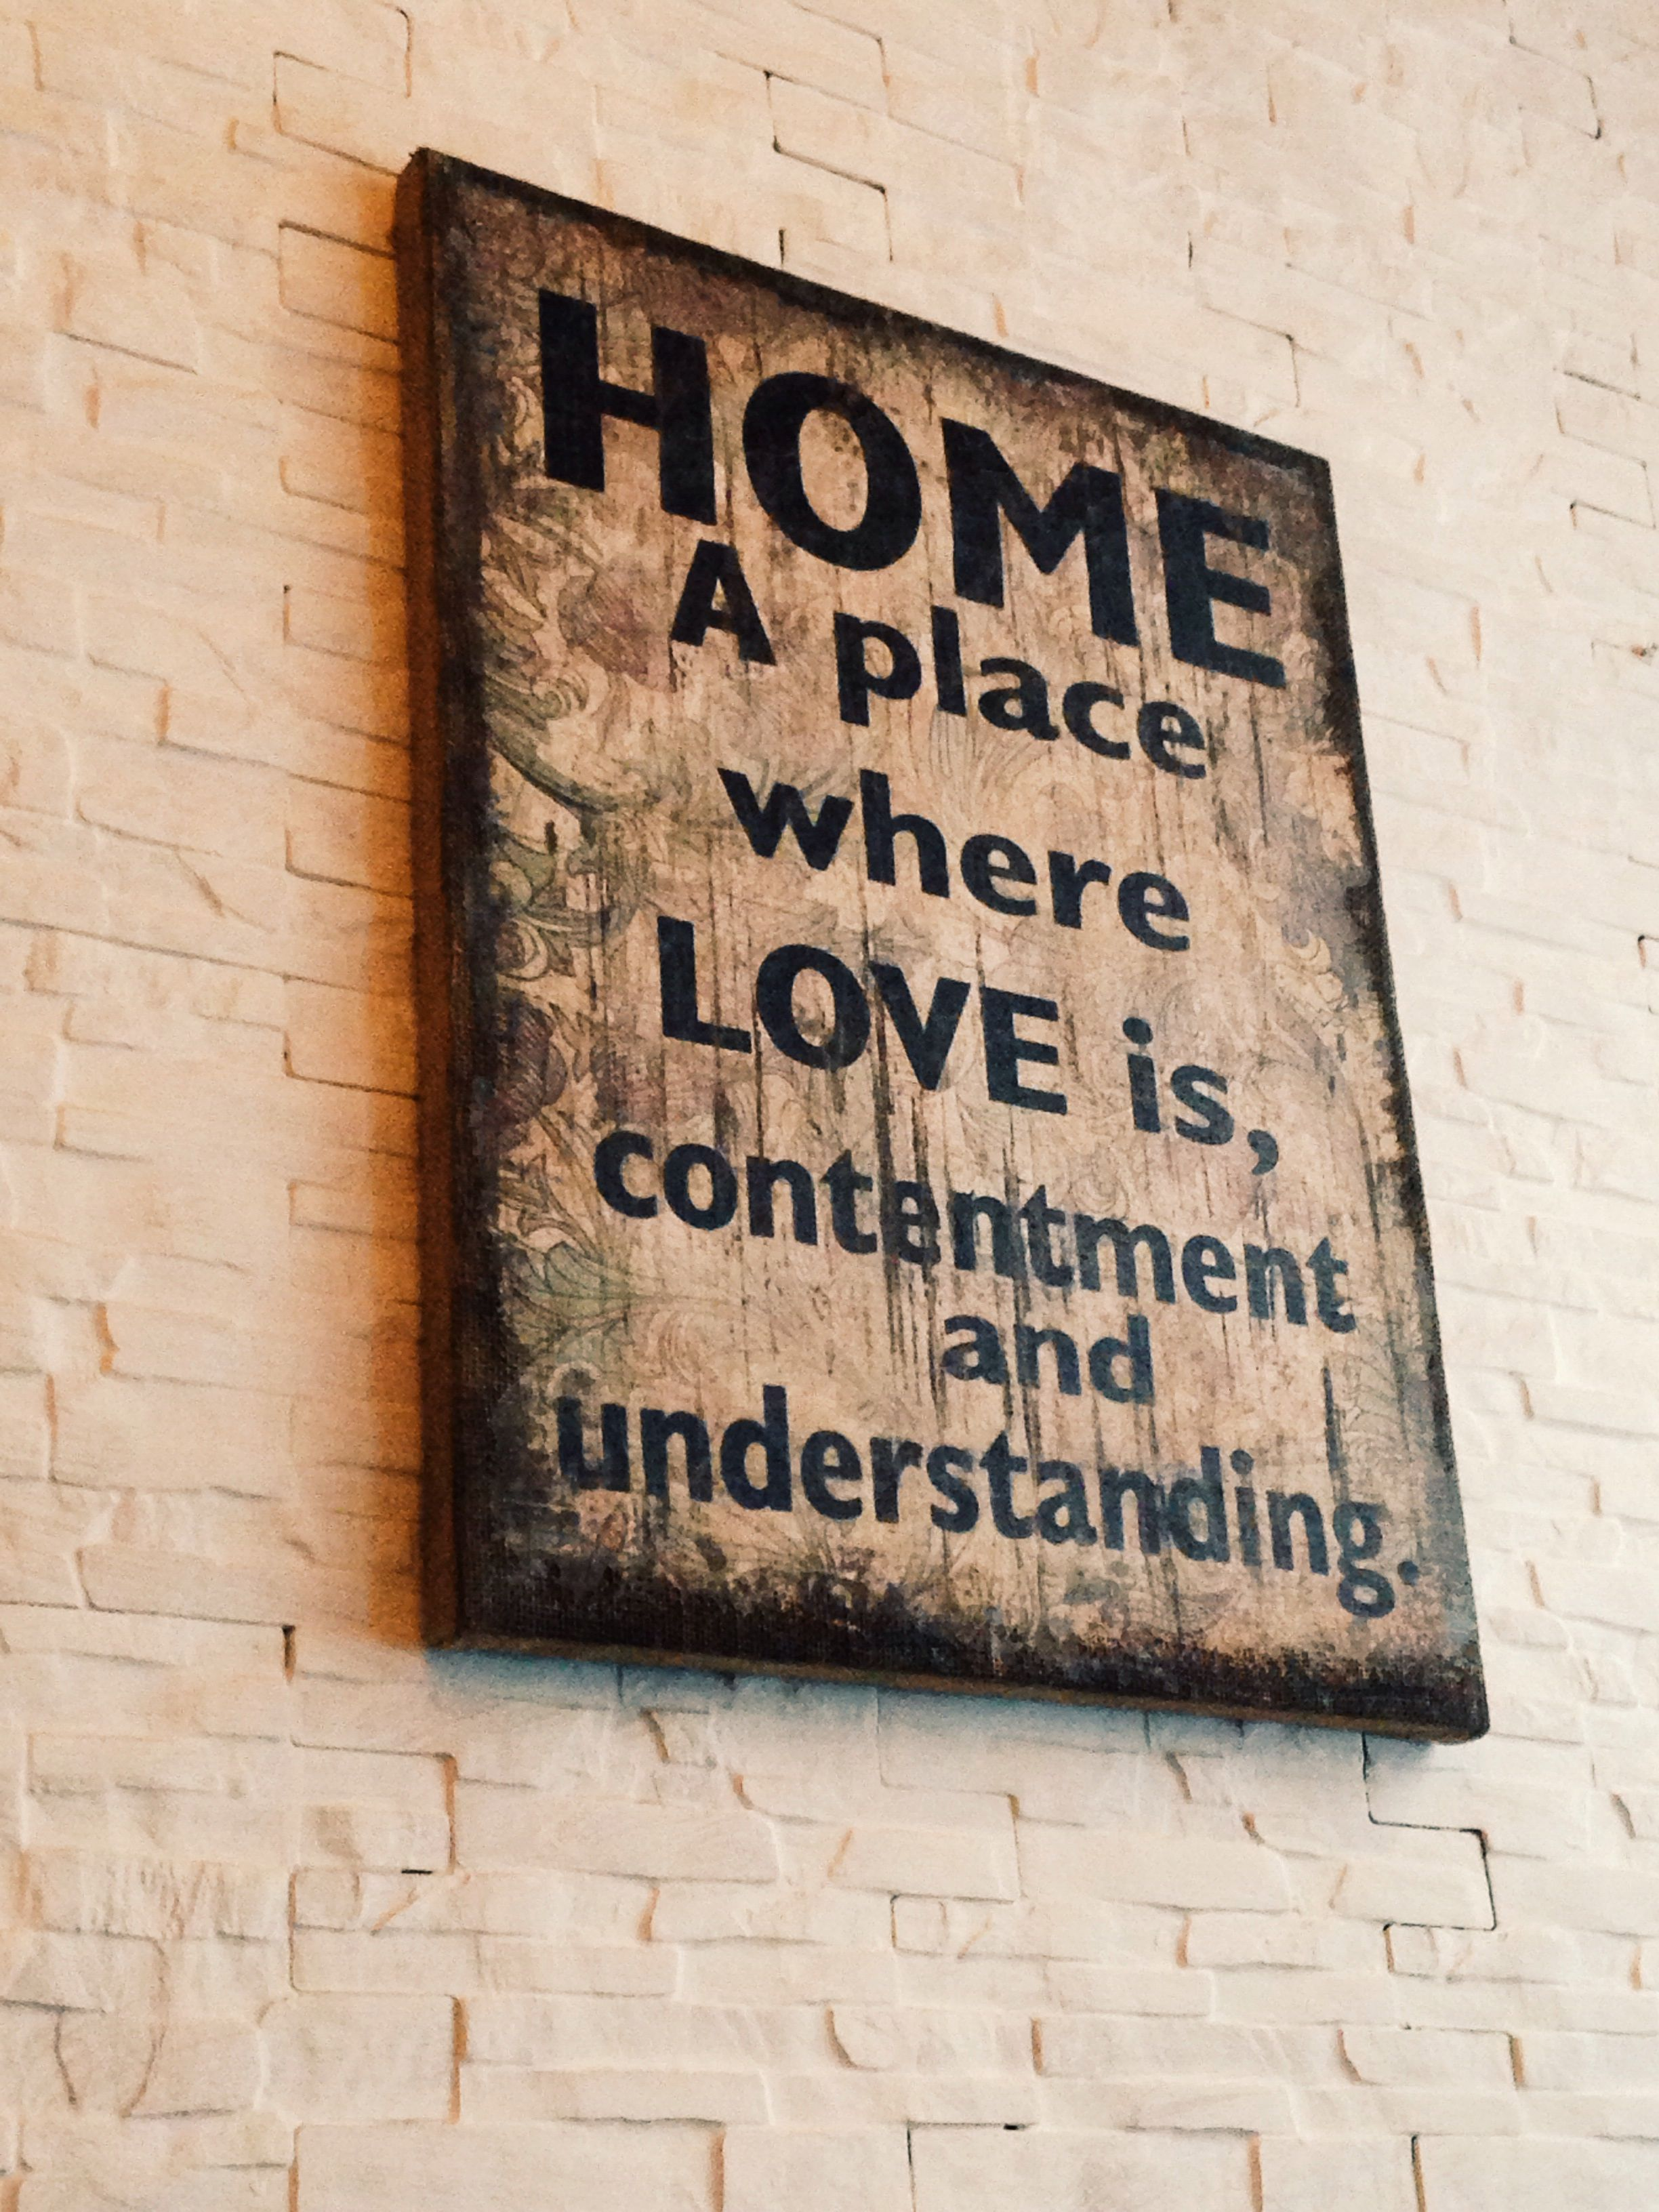 Home sweet home quotes hongkong diy pinterest for Home sweet home quotes